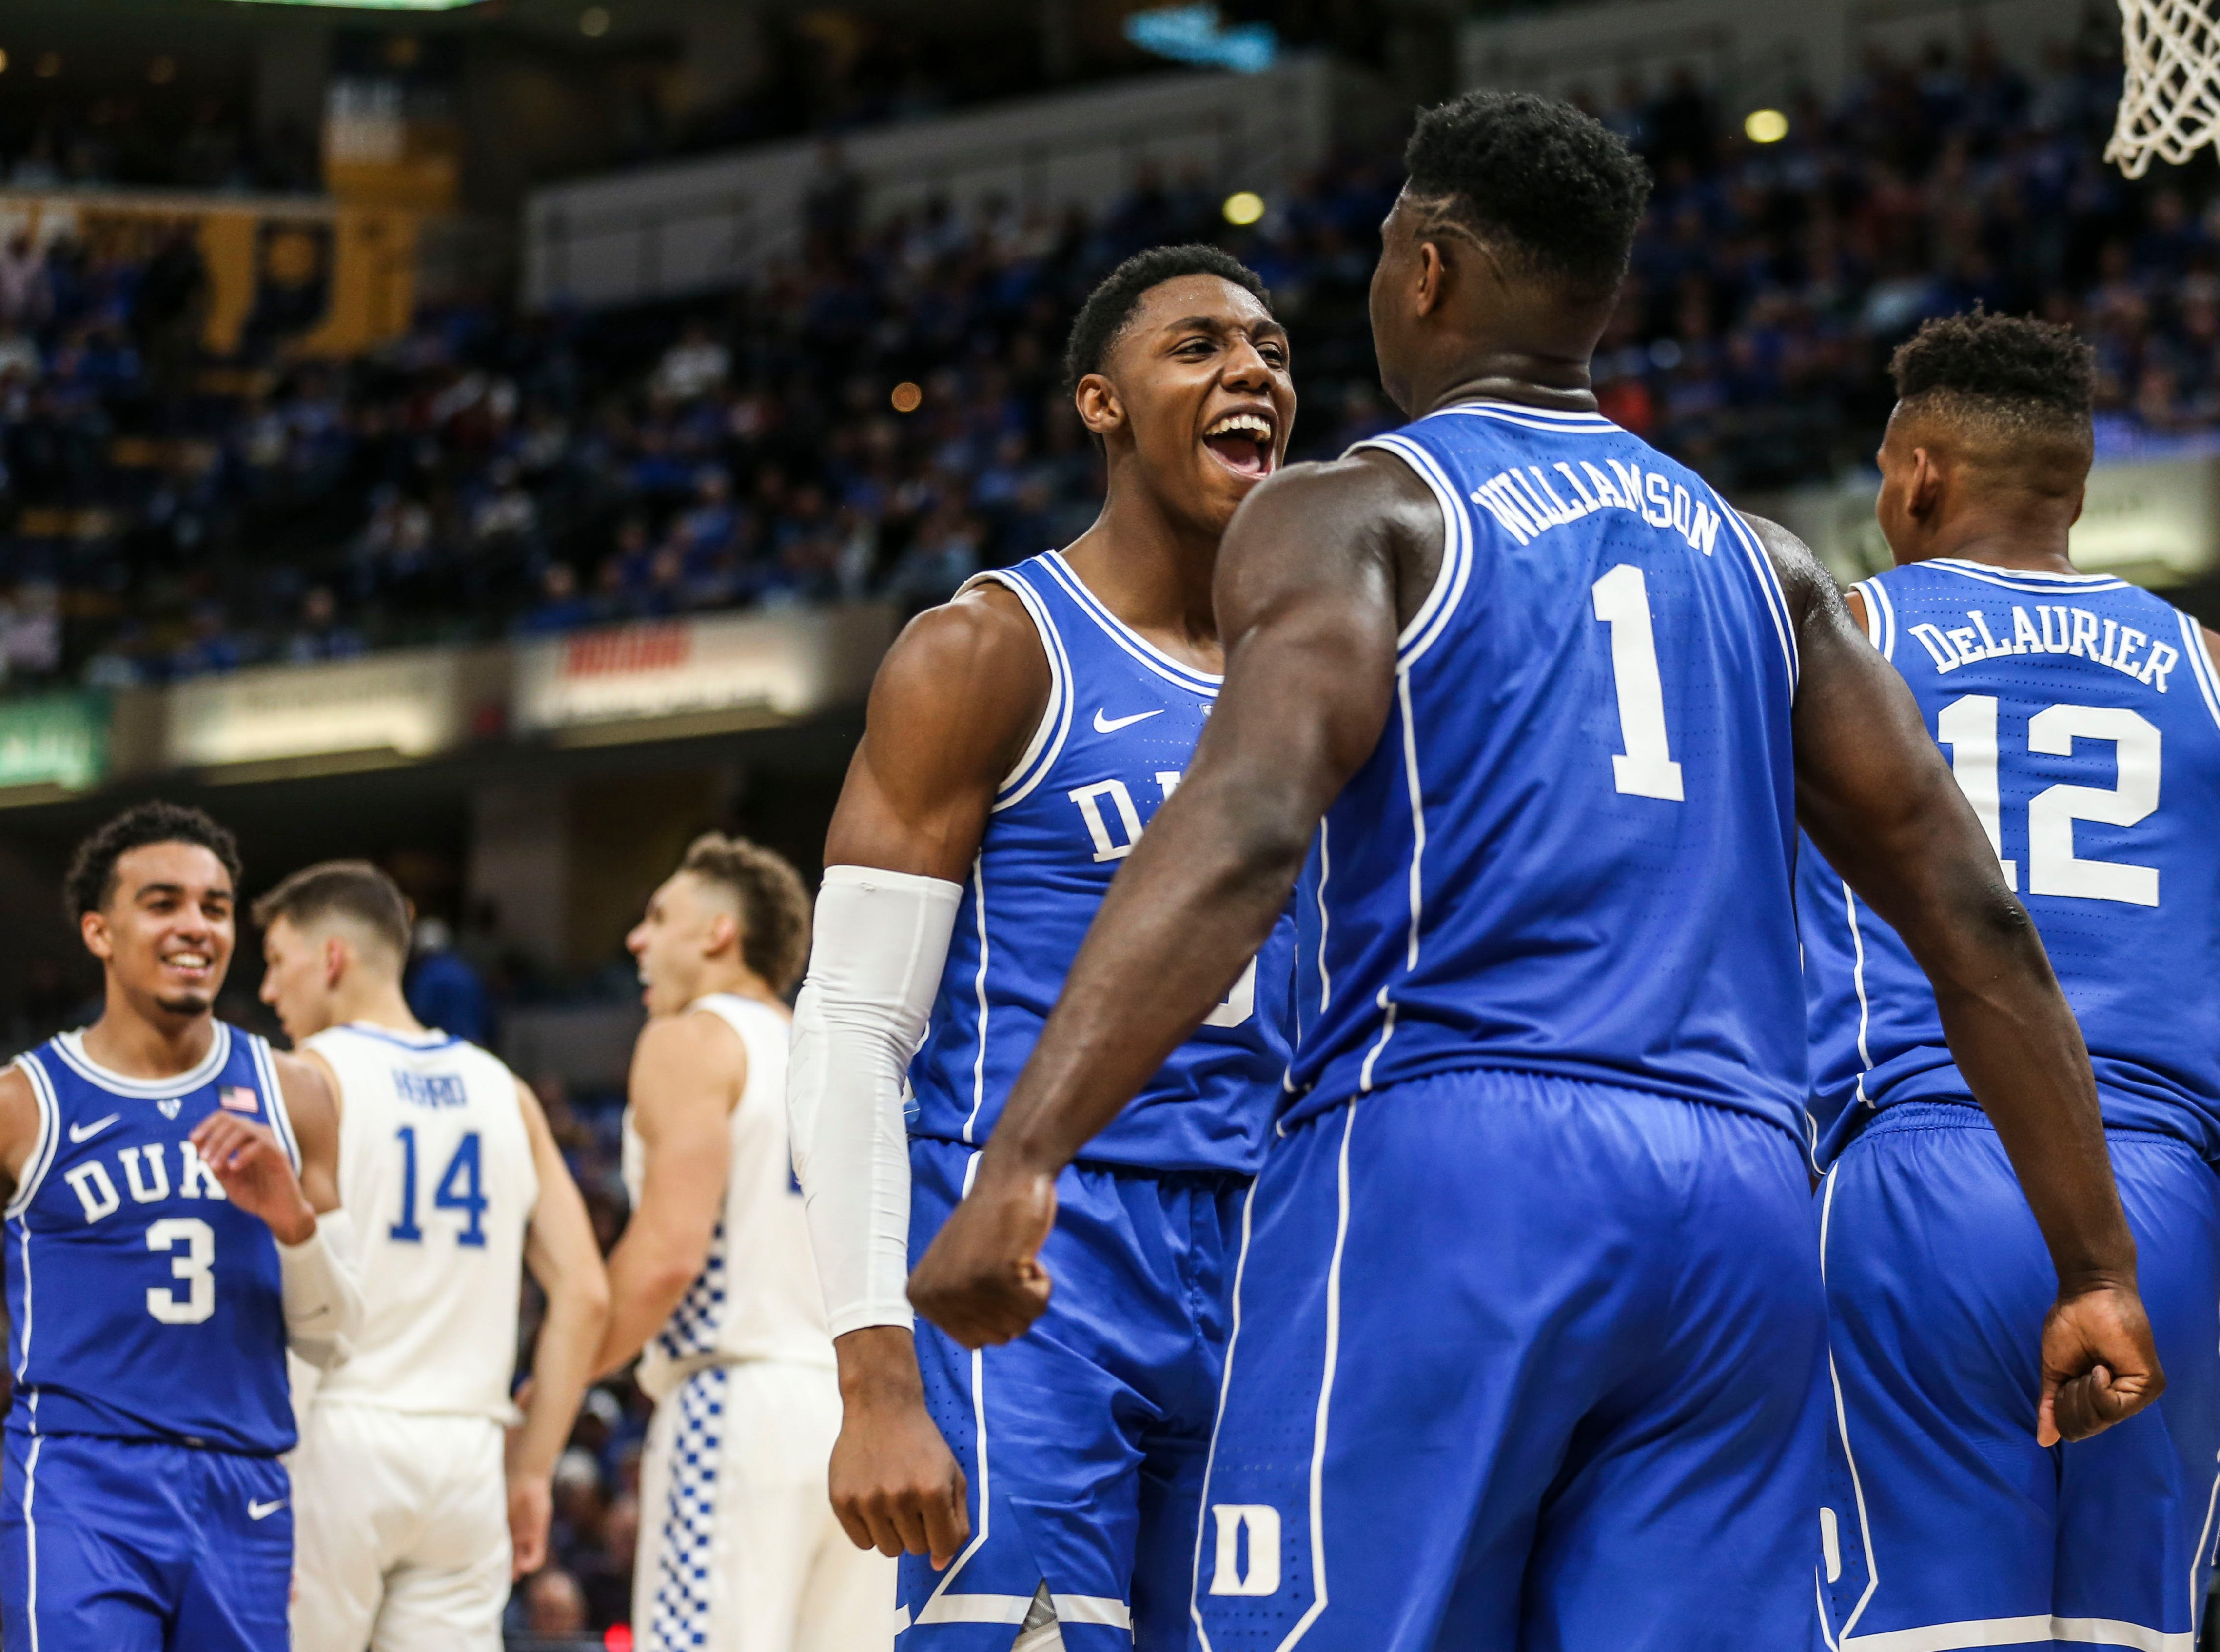 Duke's Zion Williamson, right, gets a bump from teammate R.J. Barrett, left, as the freshman -- who played like a  veteran senior -- scored 29 points against an overmatched Kentucky team as the Blue Devils crushed the Wildcats 118-84 in the Champions Classic Tuesday night. Barrett had 33 points. Nov. 6, 2018